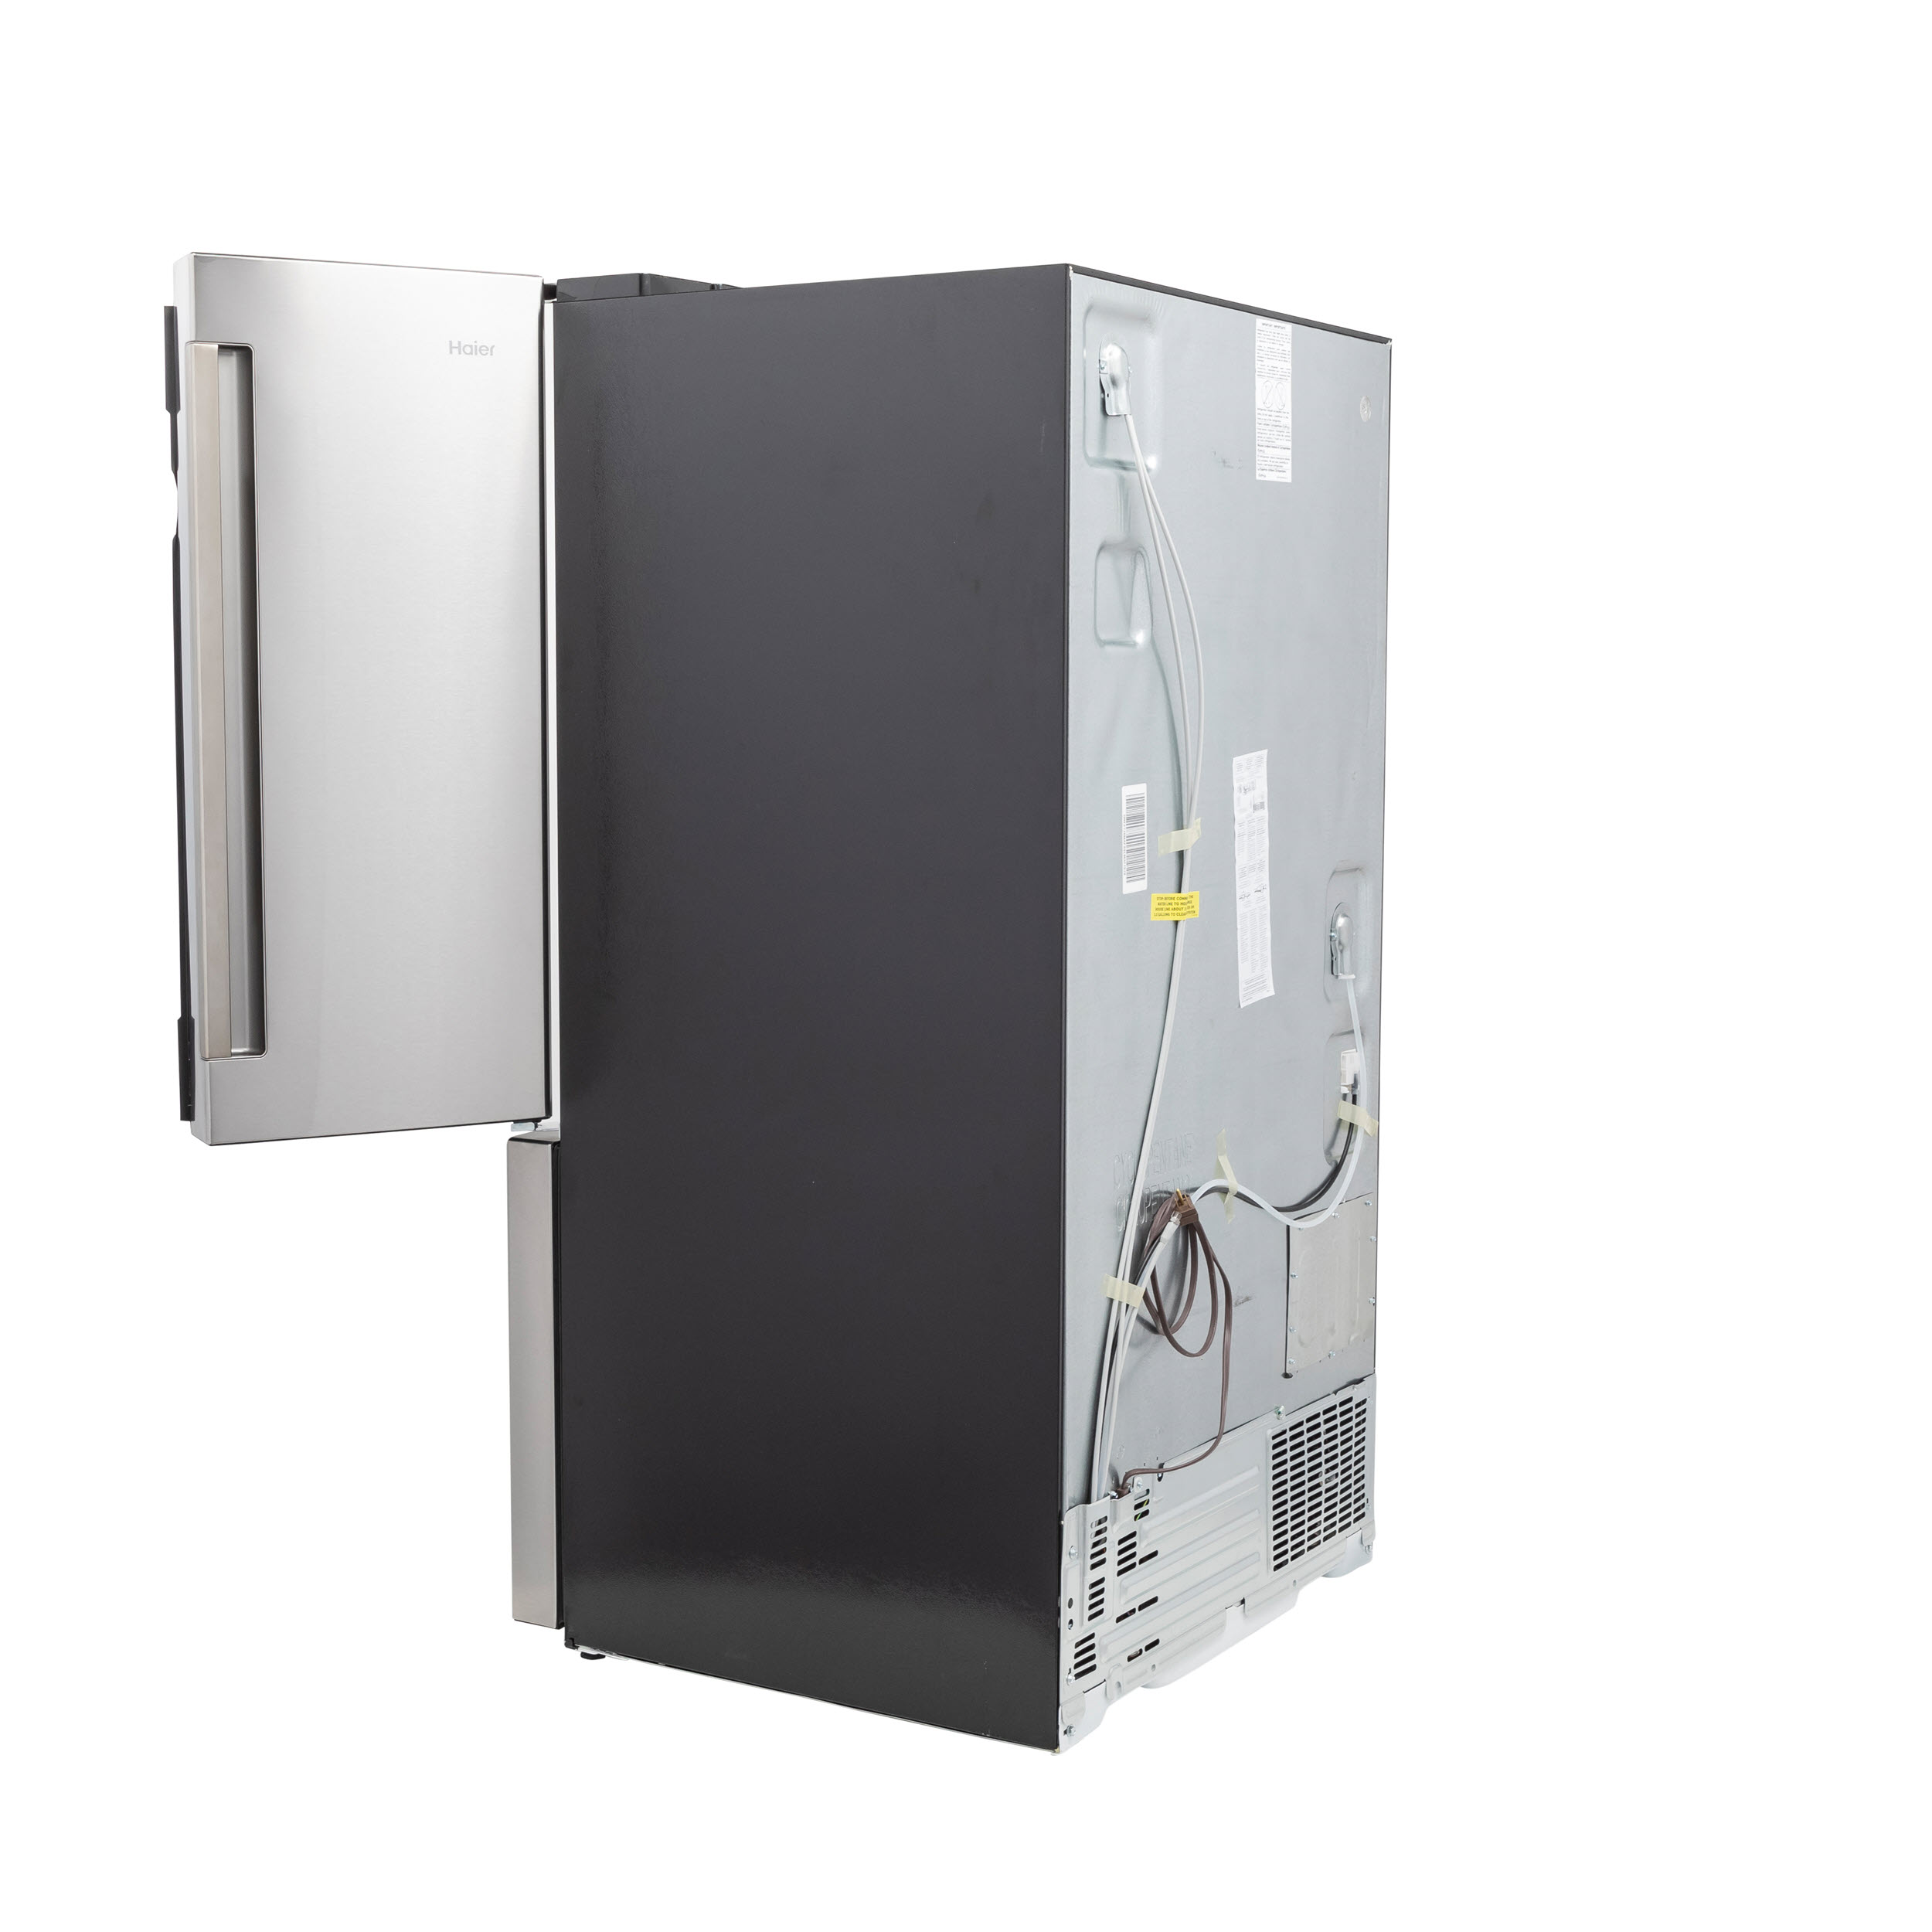 Model: QNE27JSMSS | Haier ENERGY STAR® 27.0 Cu. Ft. French-Door Refrigerator